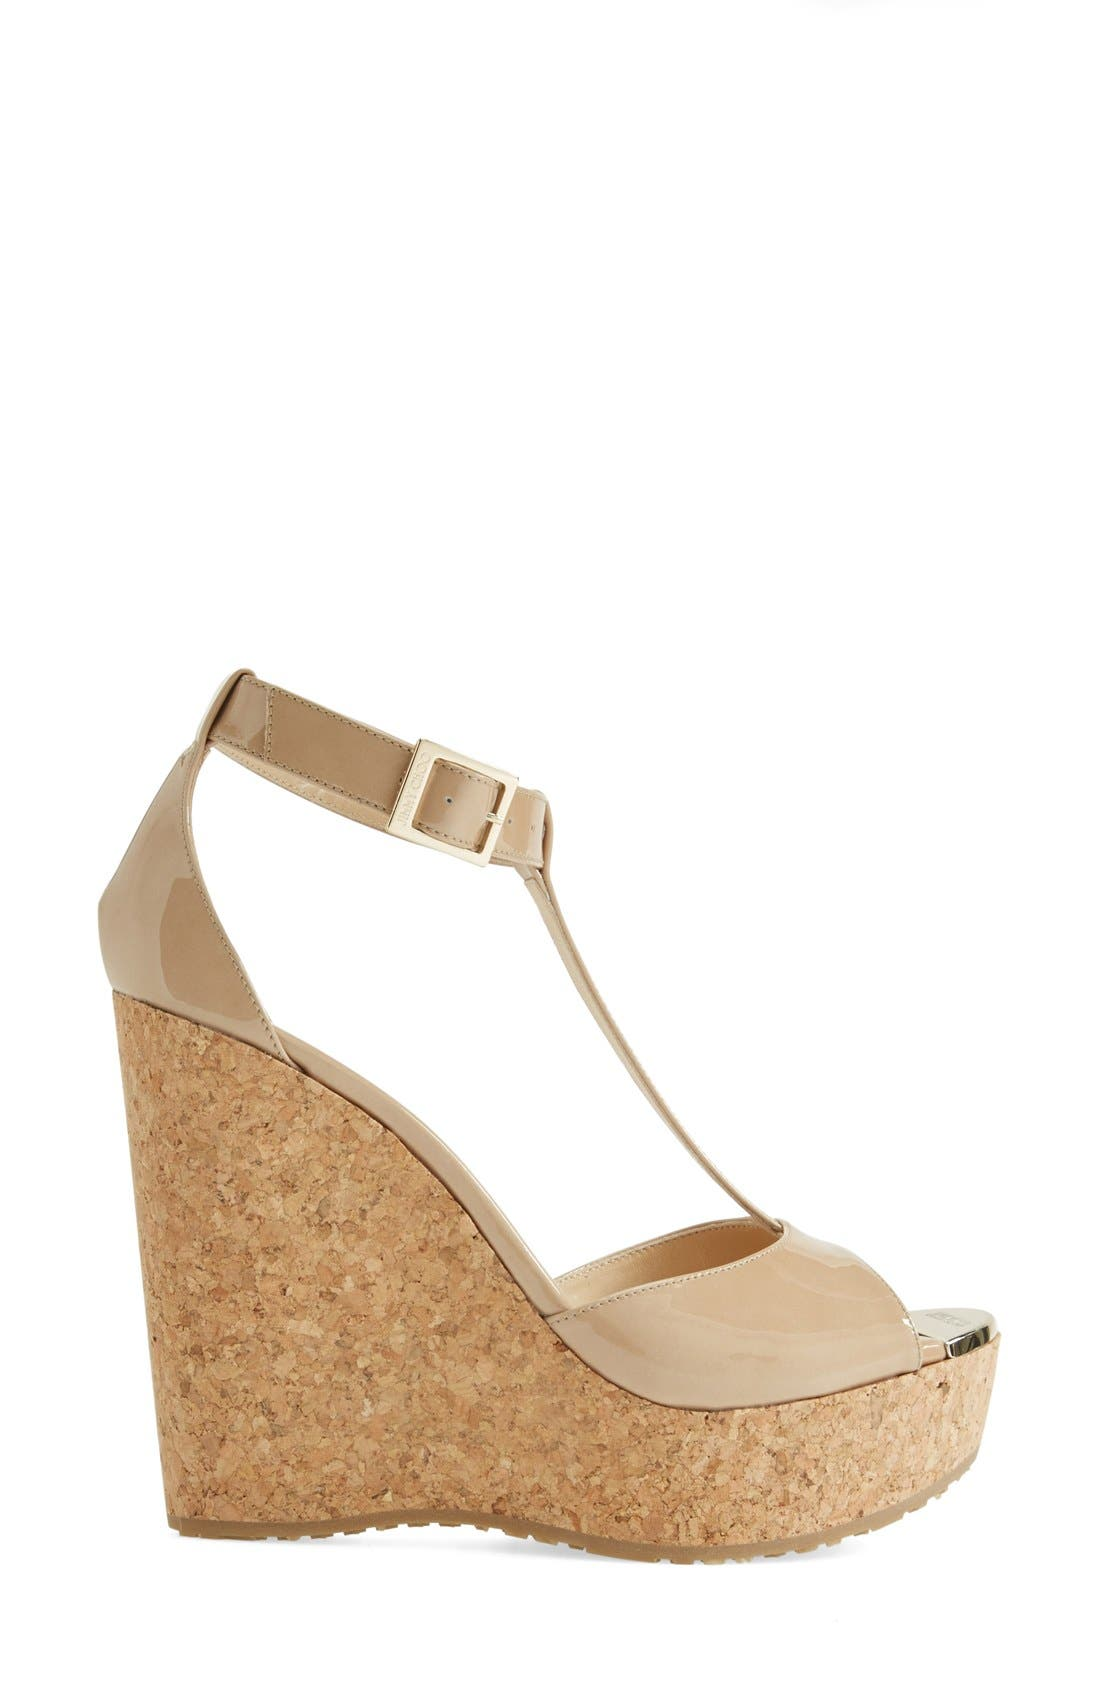 Alternate Image 4  - Jimmy Choo 'Pela' Cork Wedge Sandal (Women)